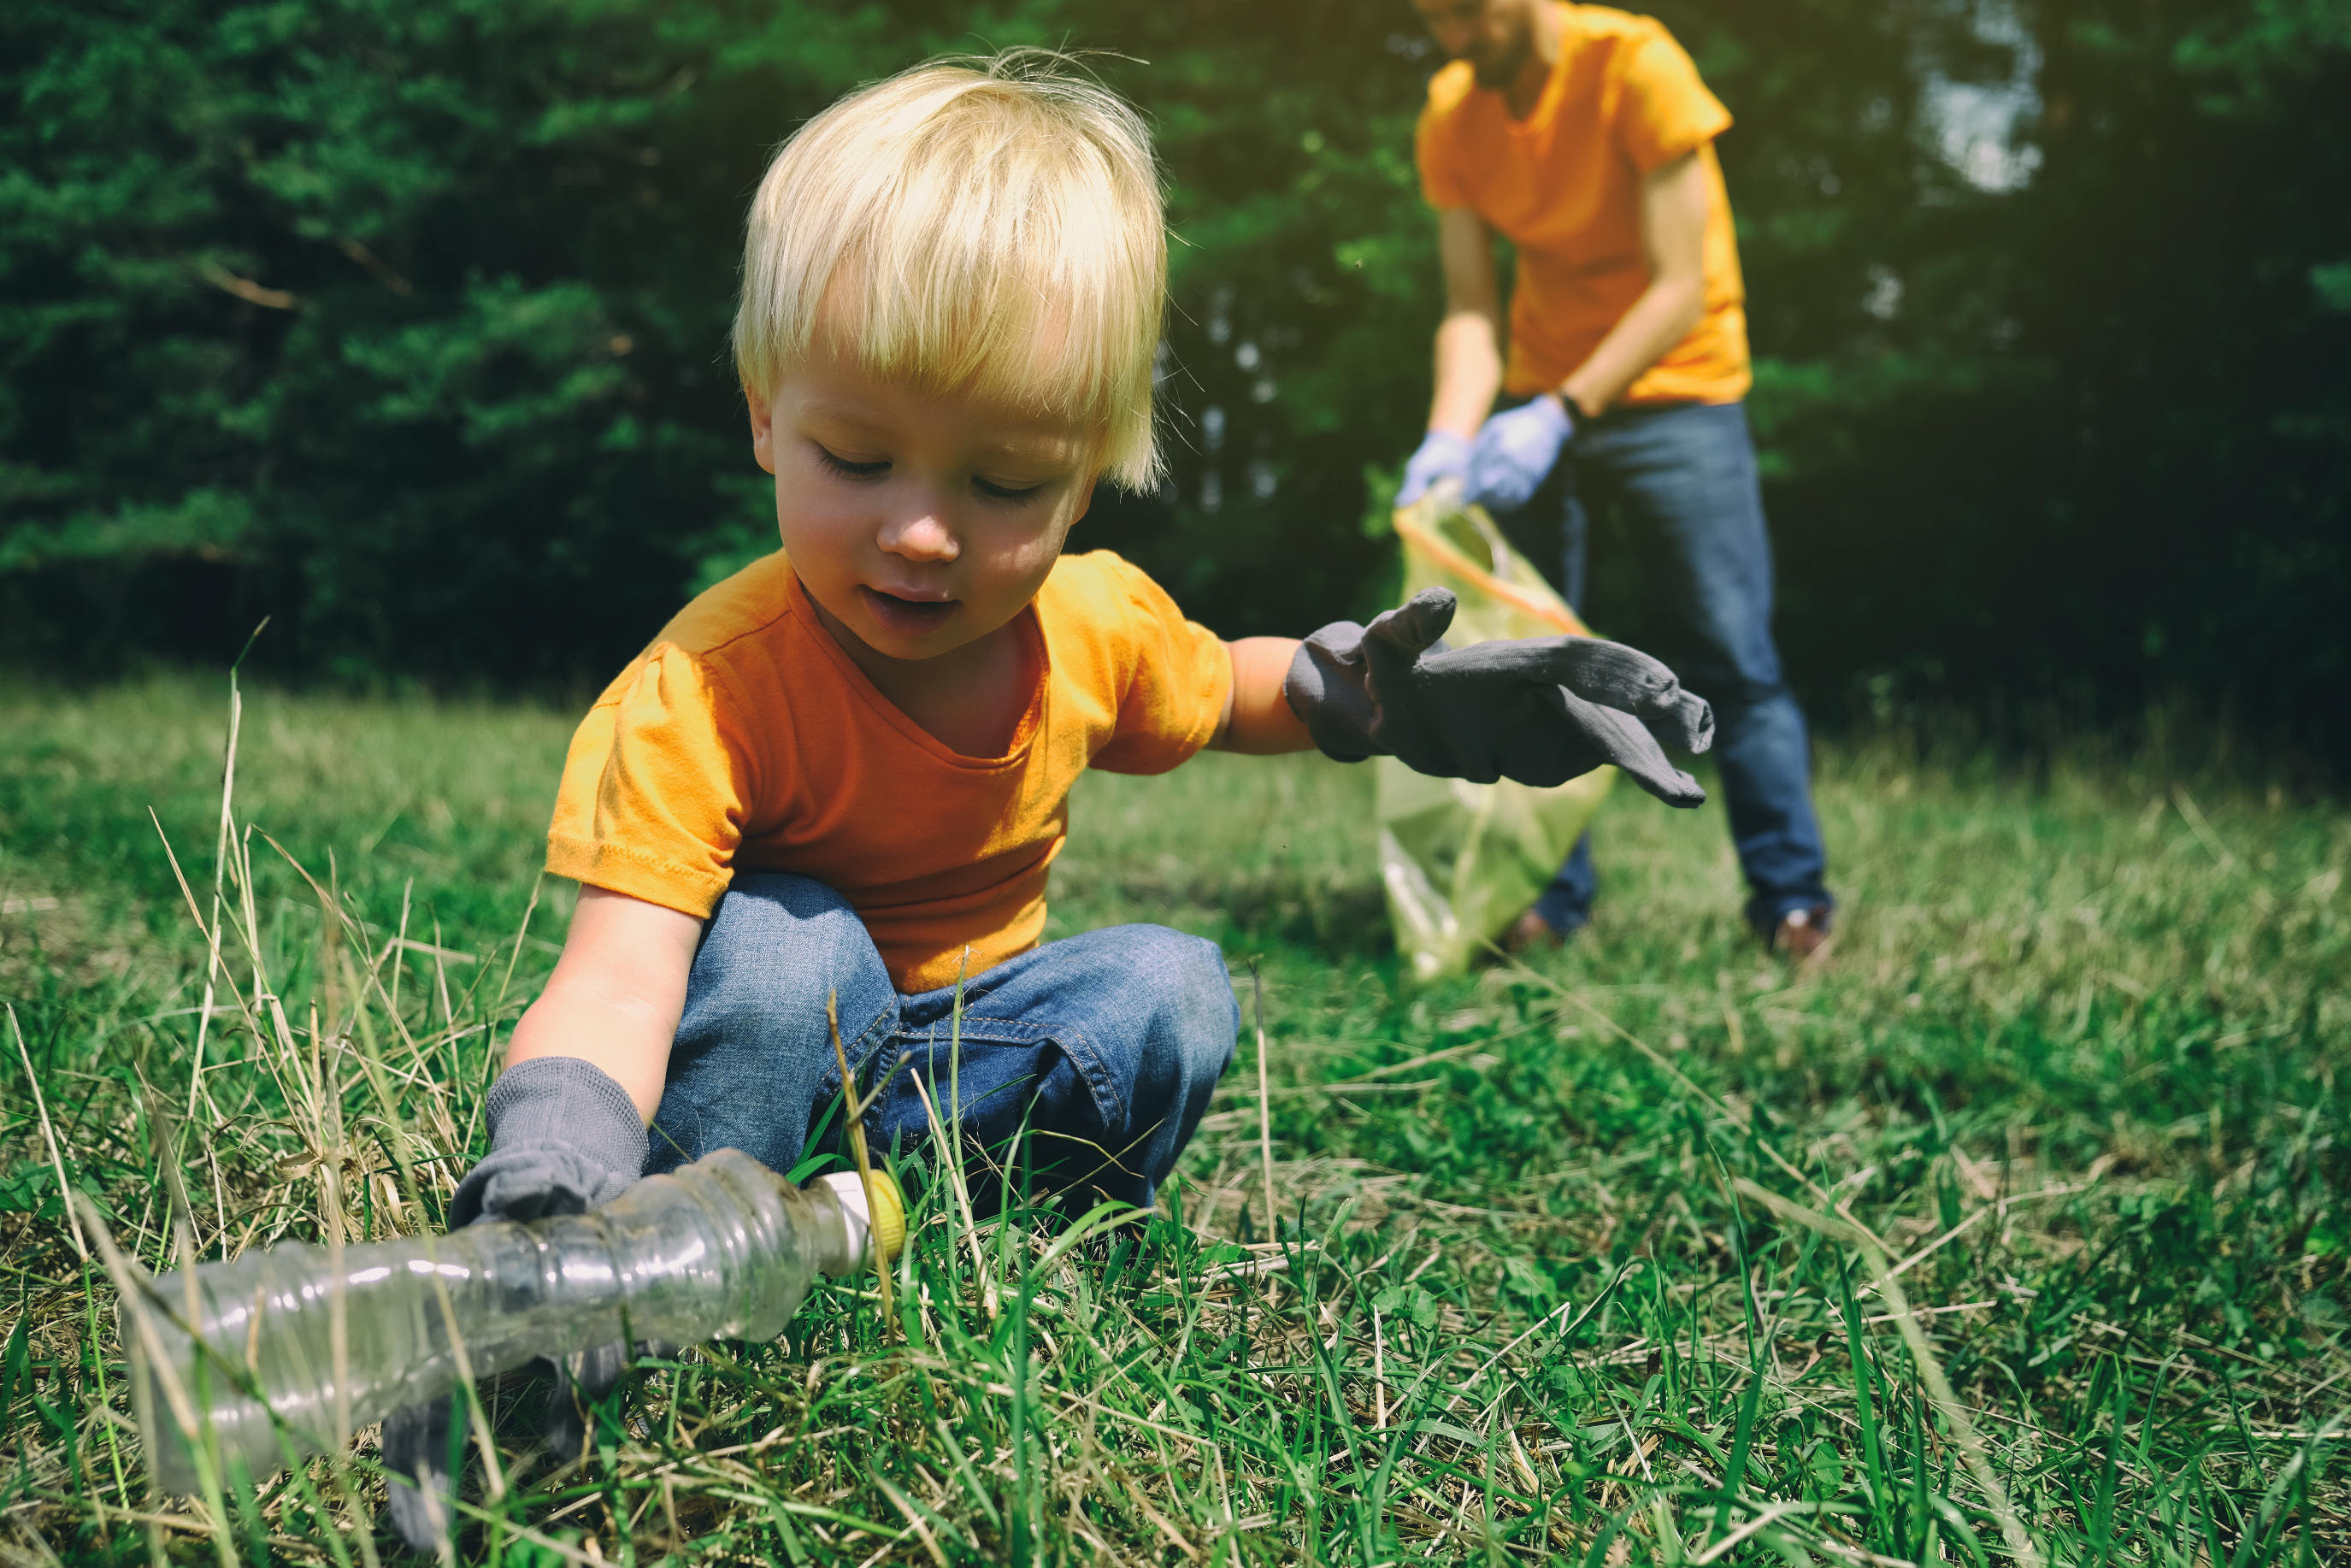 Volunteers activists child and his father in gloves tidying up rubbish in park or forest. Save environment concept. Stop plastic pollution